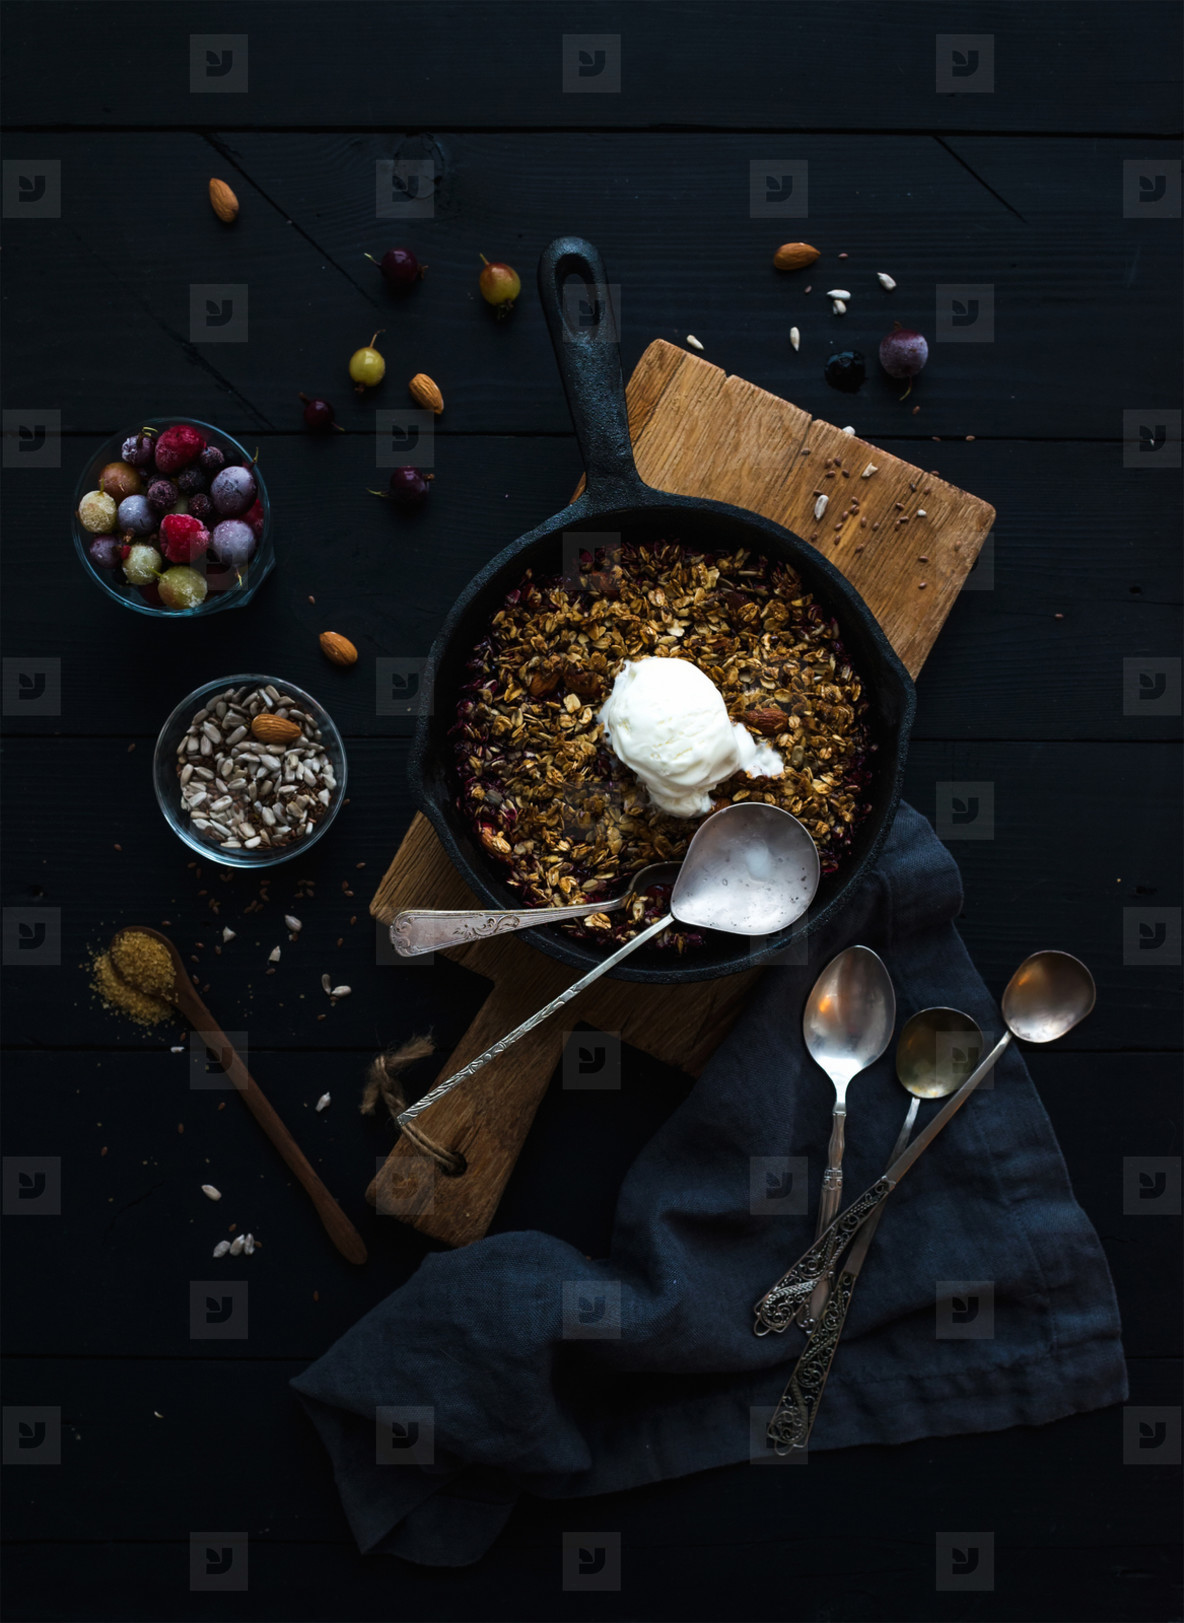 Healthy breakfast  Oat granola crumble with frozen fresh berries   seeds and ice cream scoopin irom skillet pan on rustic wooden board over dark backdrop